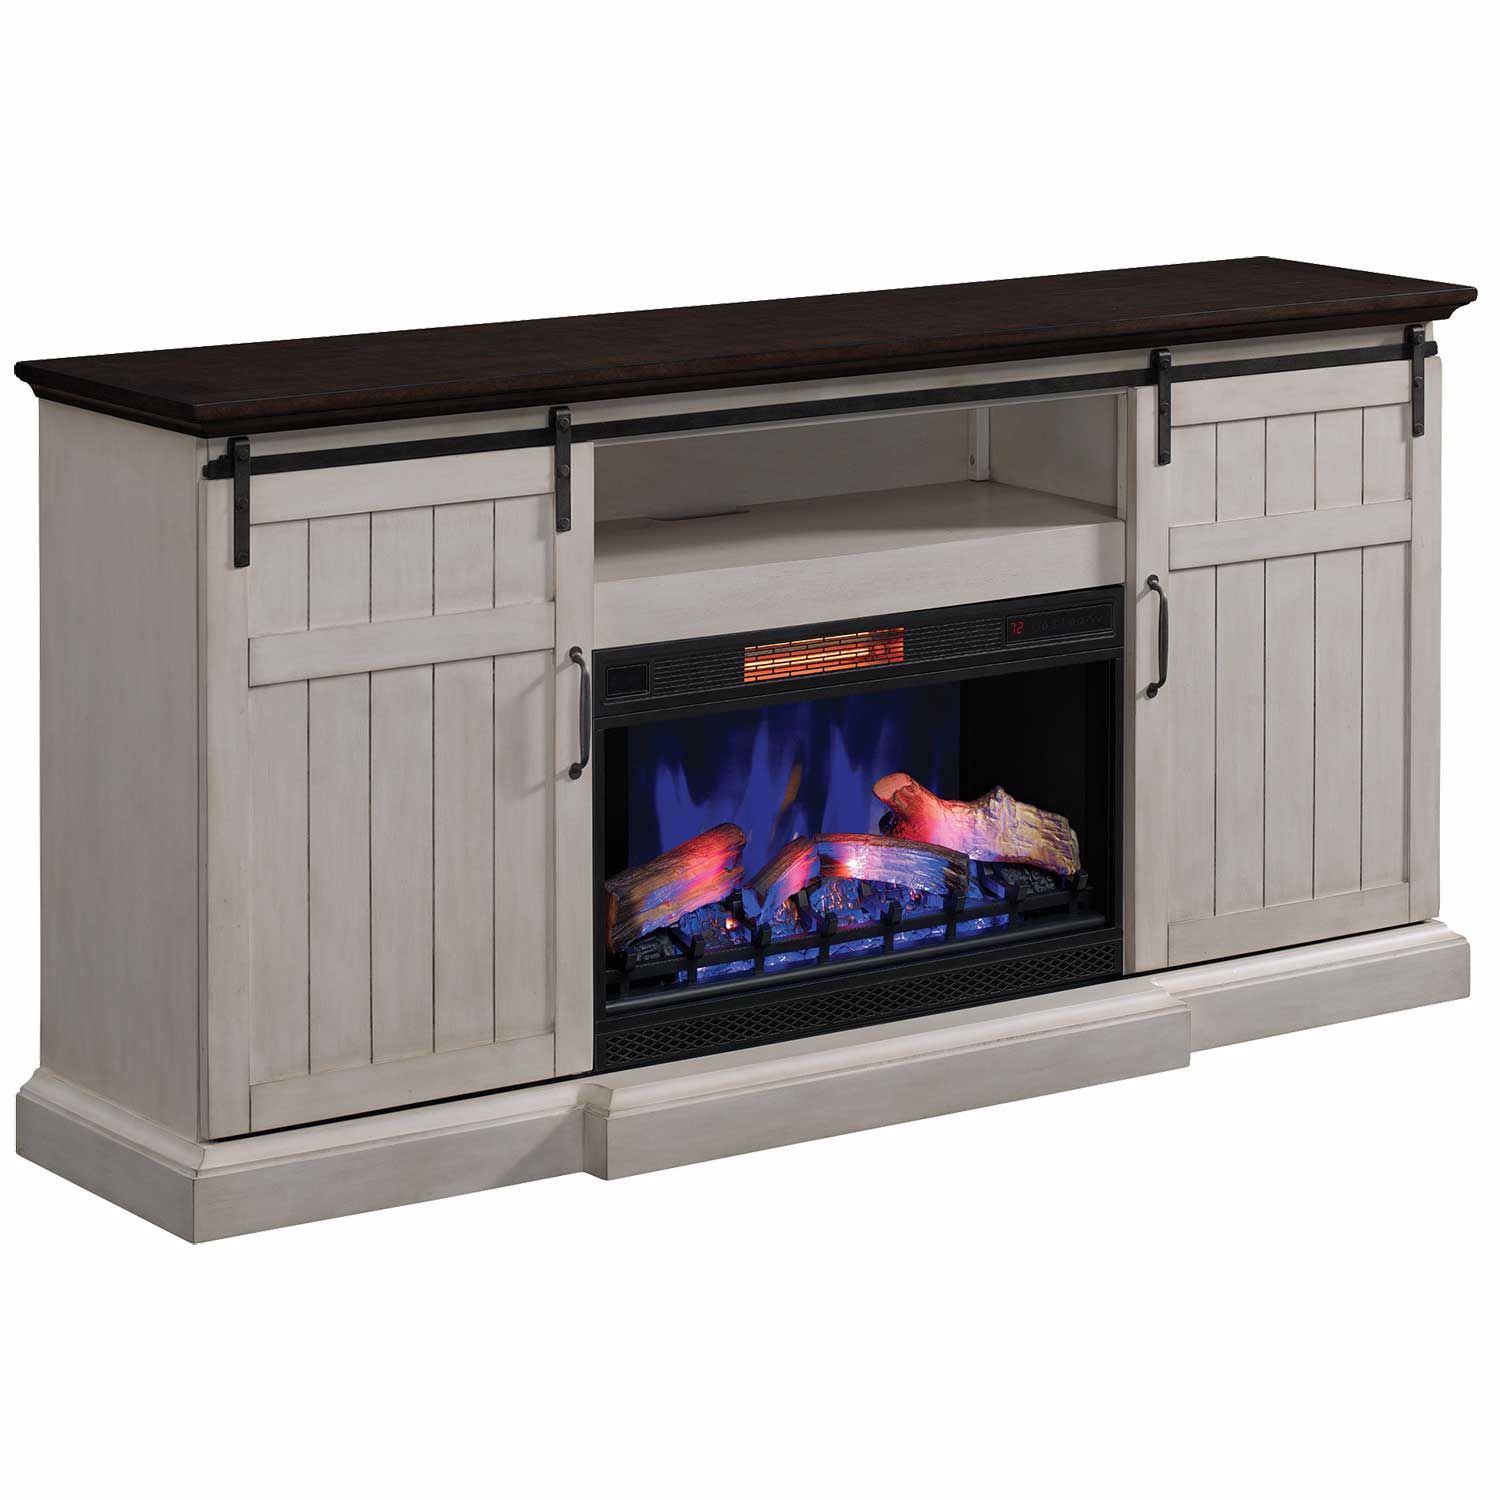 Picture of Cabaret Media Fireplace in Vintage White